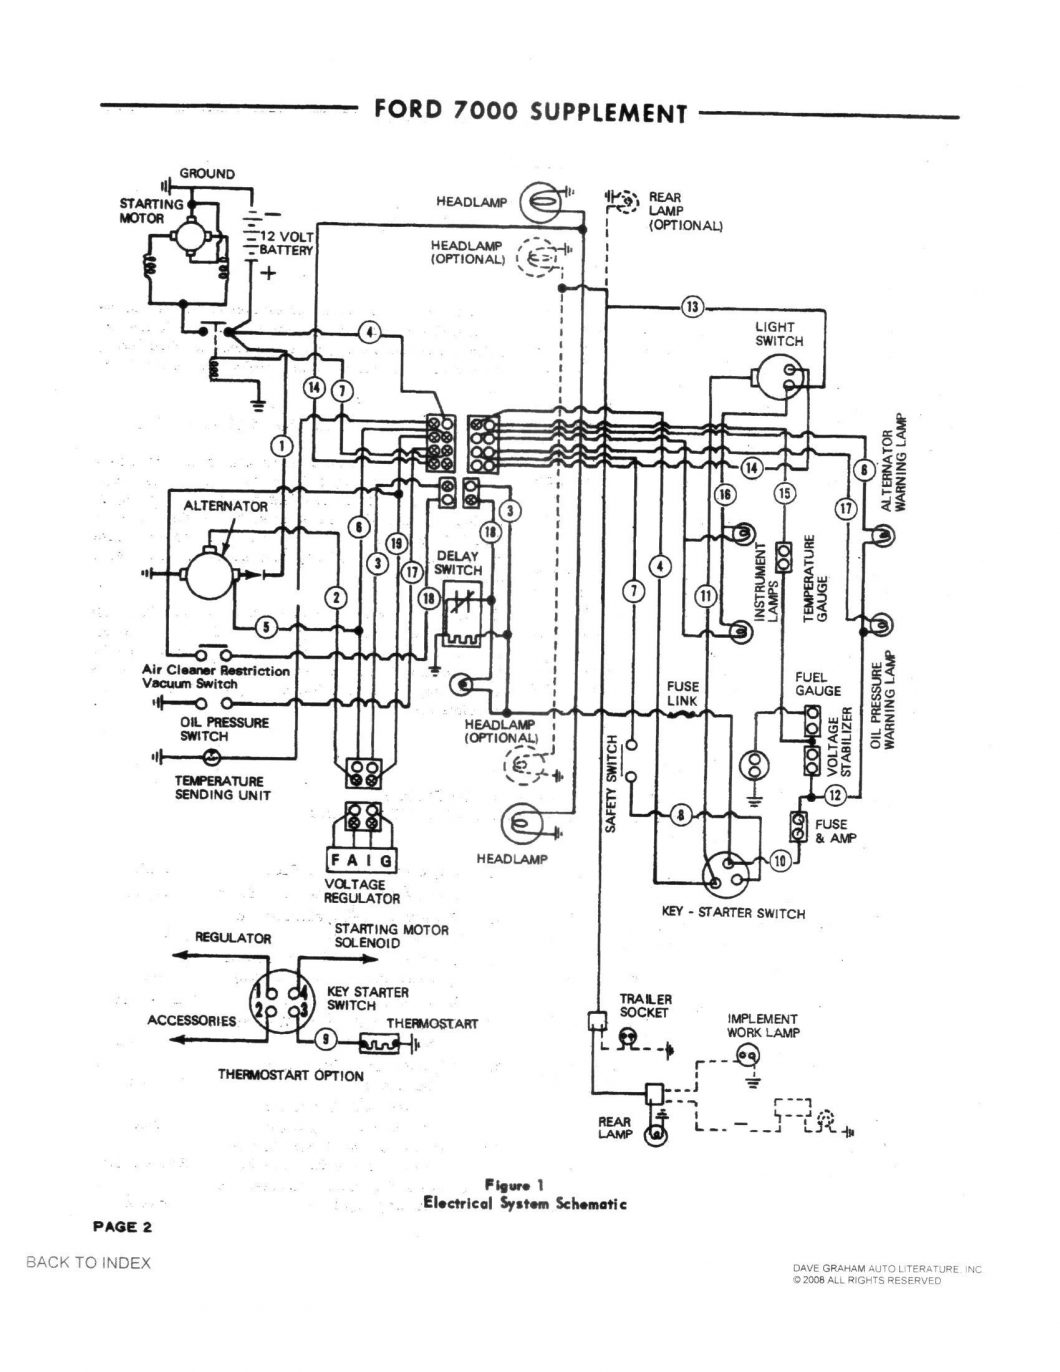 SO_6613] 600 Ford Alternator Wiring Diagram Download DiagramTaliz Xorcede Mohammedshrine Librar Wiring 101